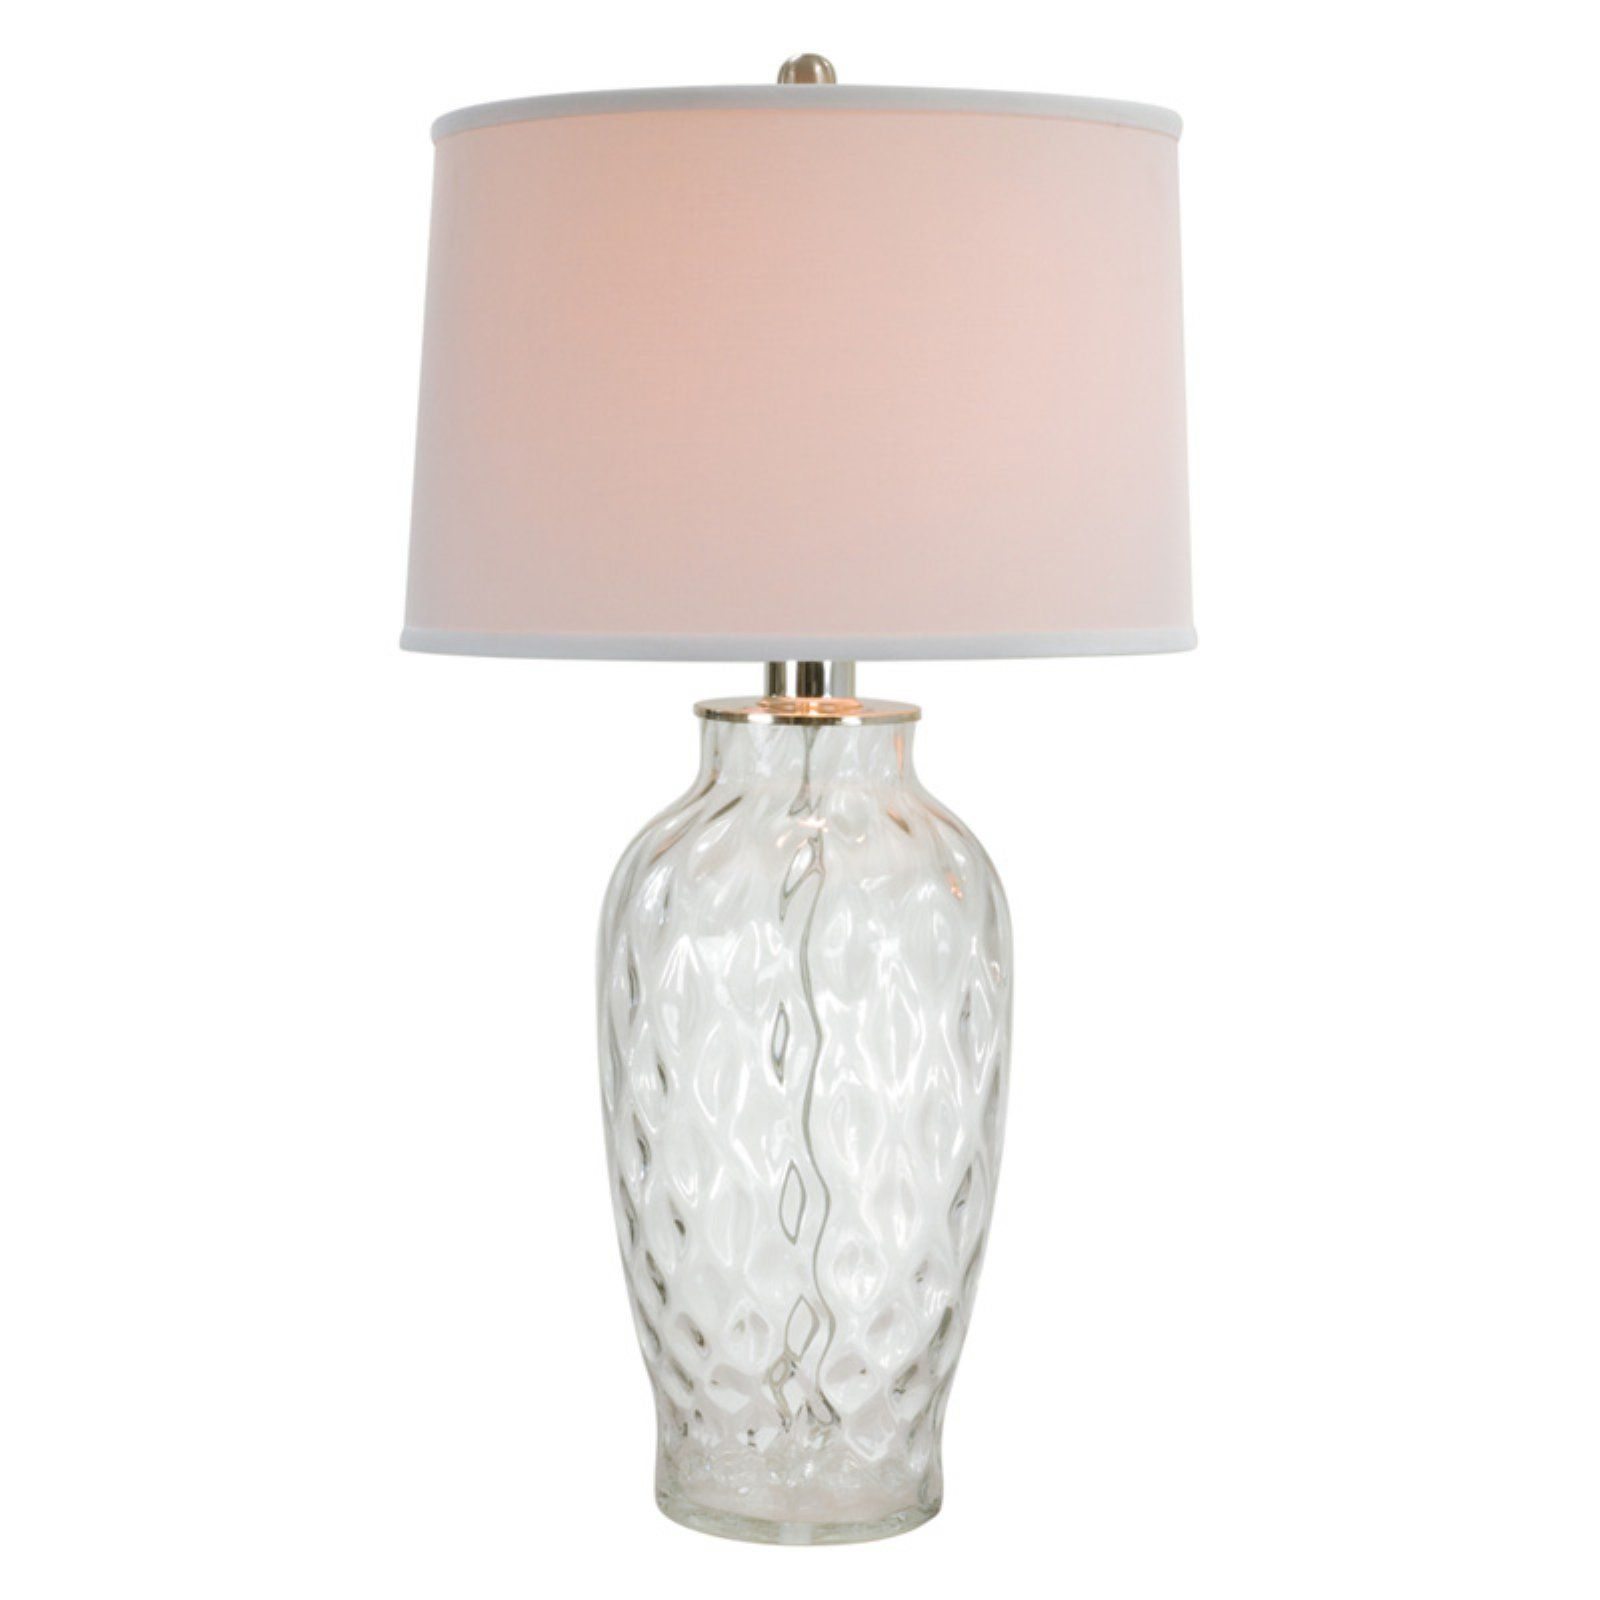 Anthony California 29 in. Clear Bubble Glass Table Lamp